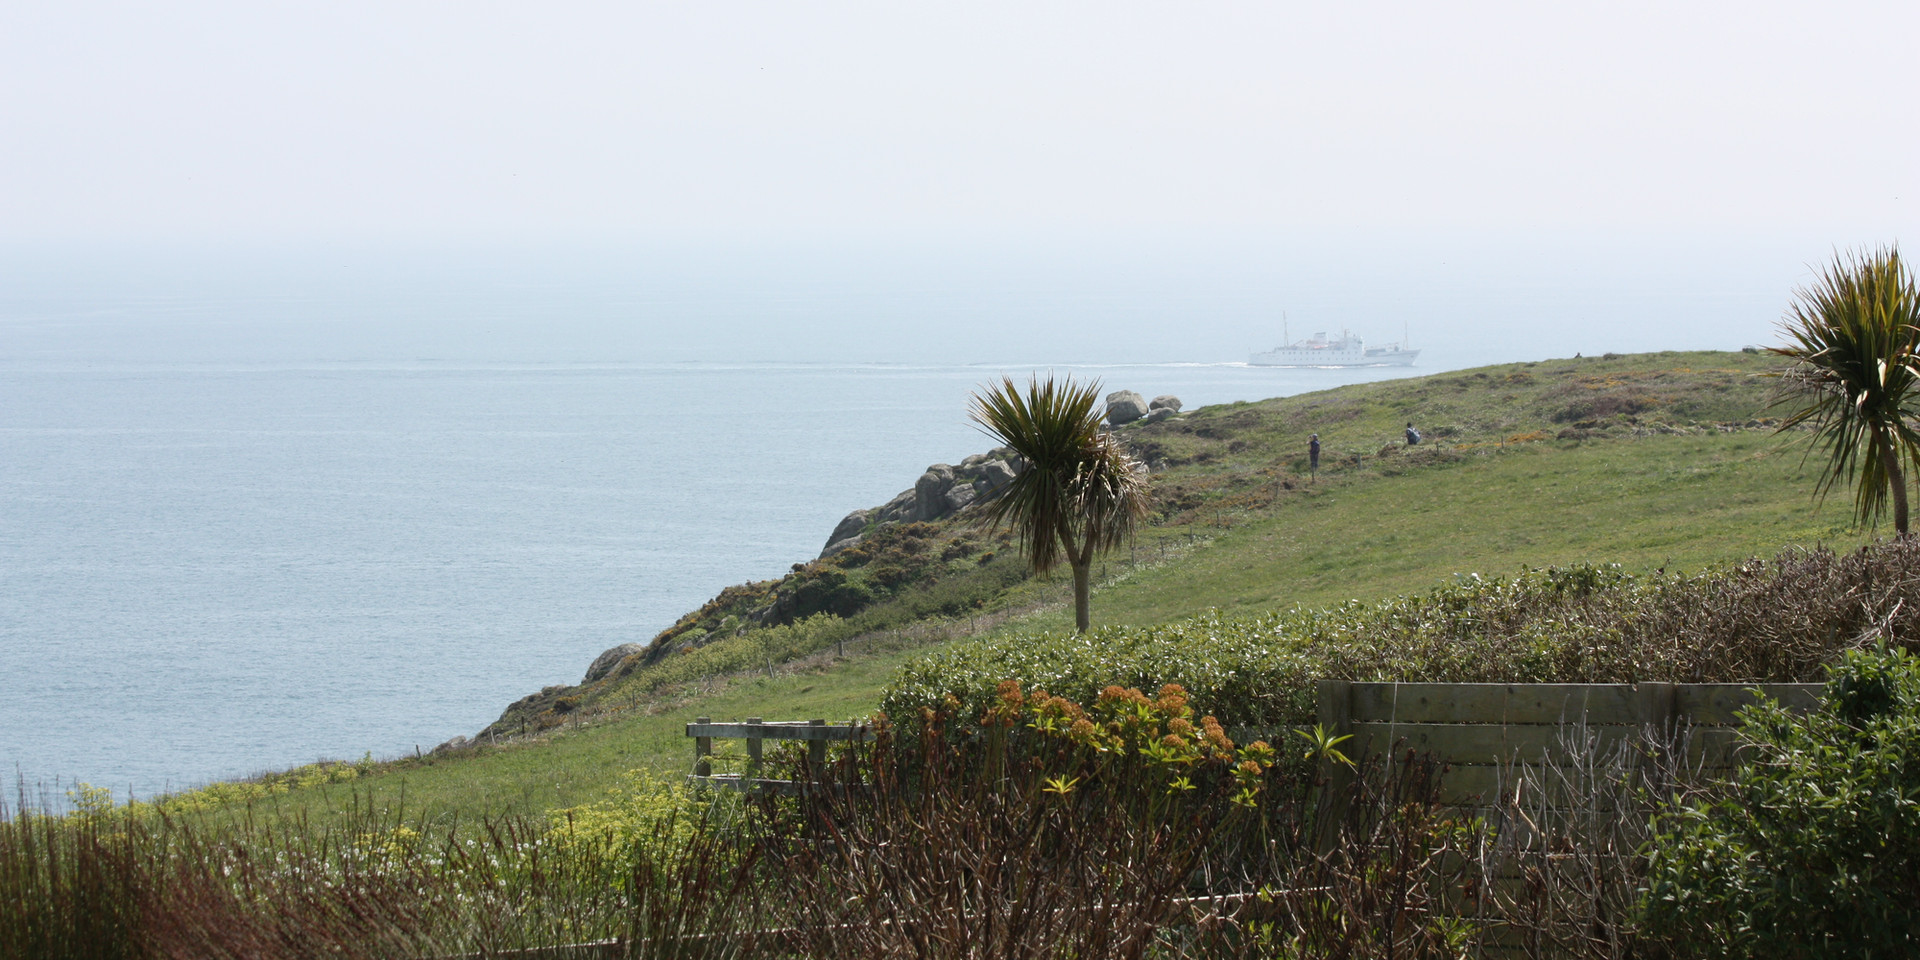 View towards Porth Chapel/coastal path from the end of the garden